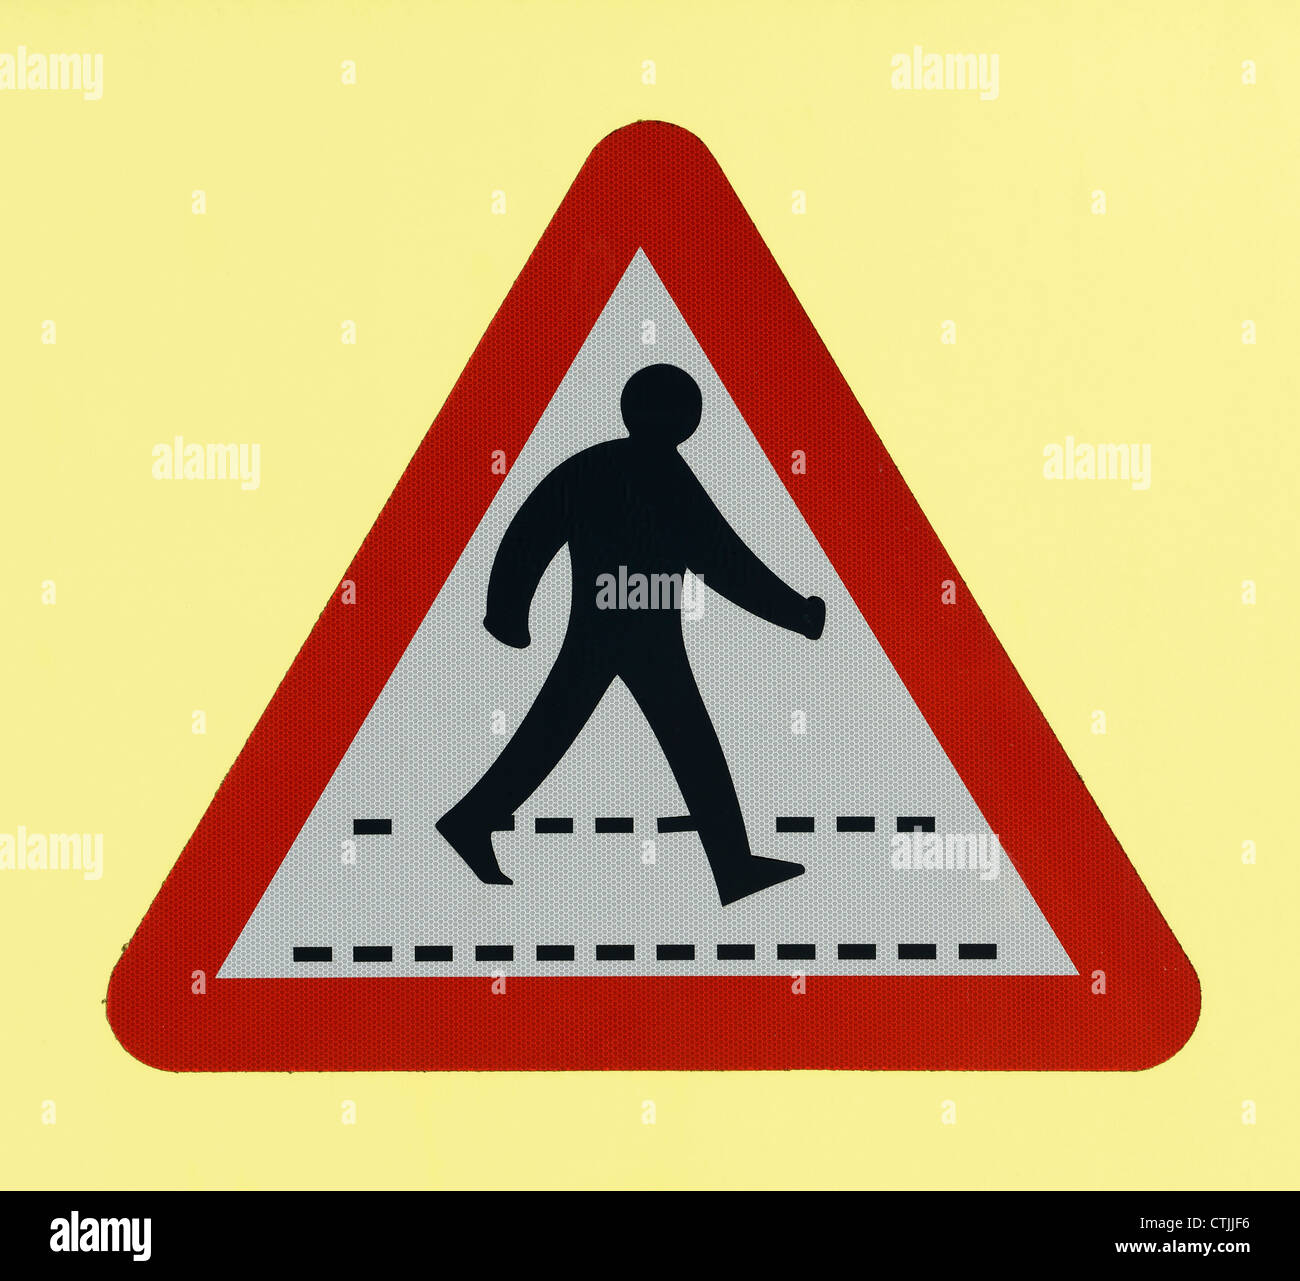 Pedestrian Crossing road sign - Stock Image